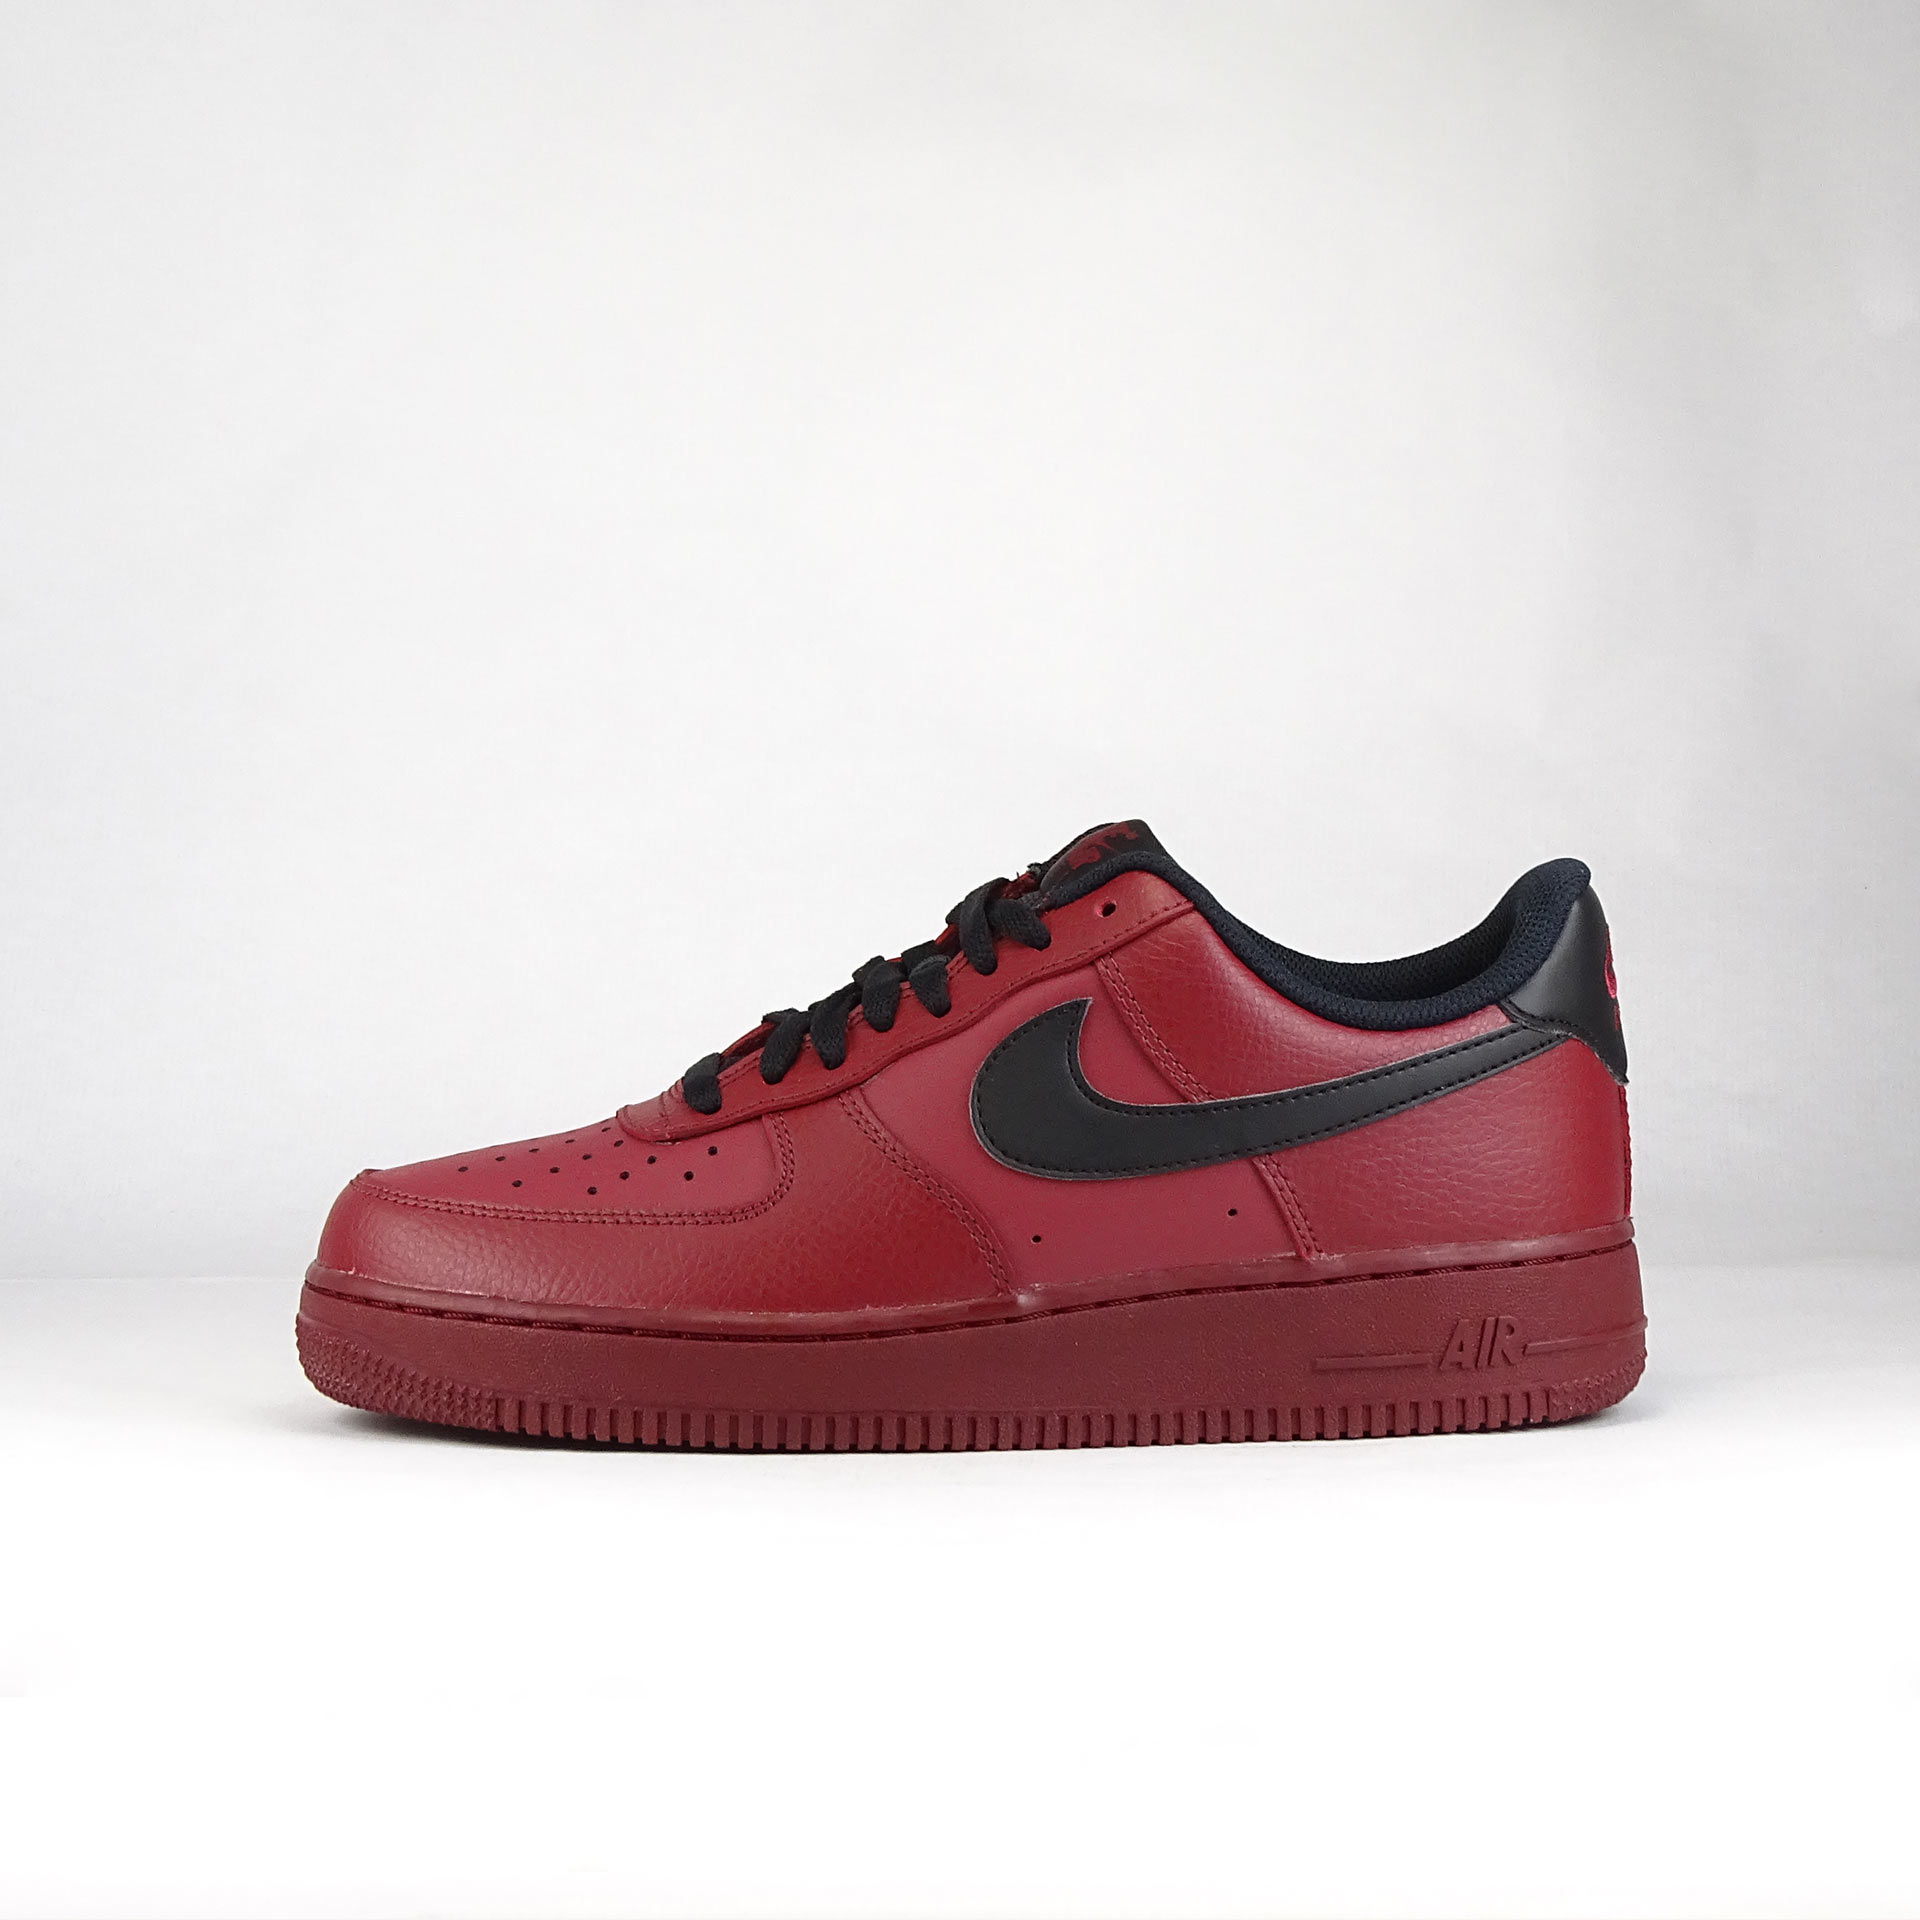 Nike Air Force 1 granate